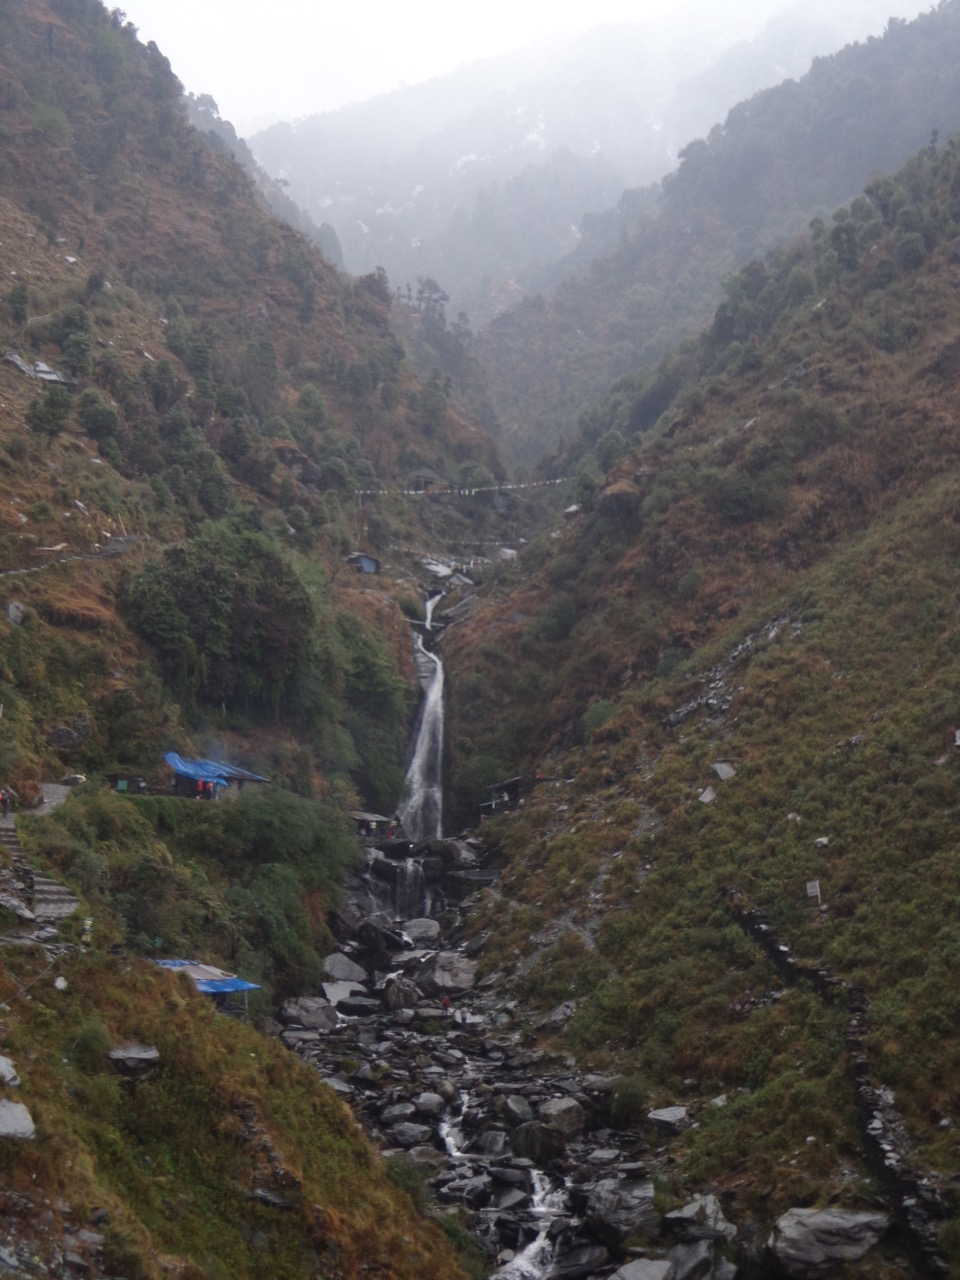 The Bhaksunag waterfall is visible from afar.